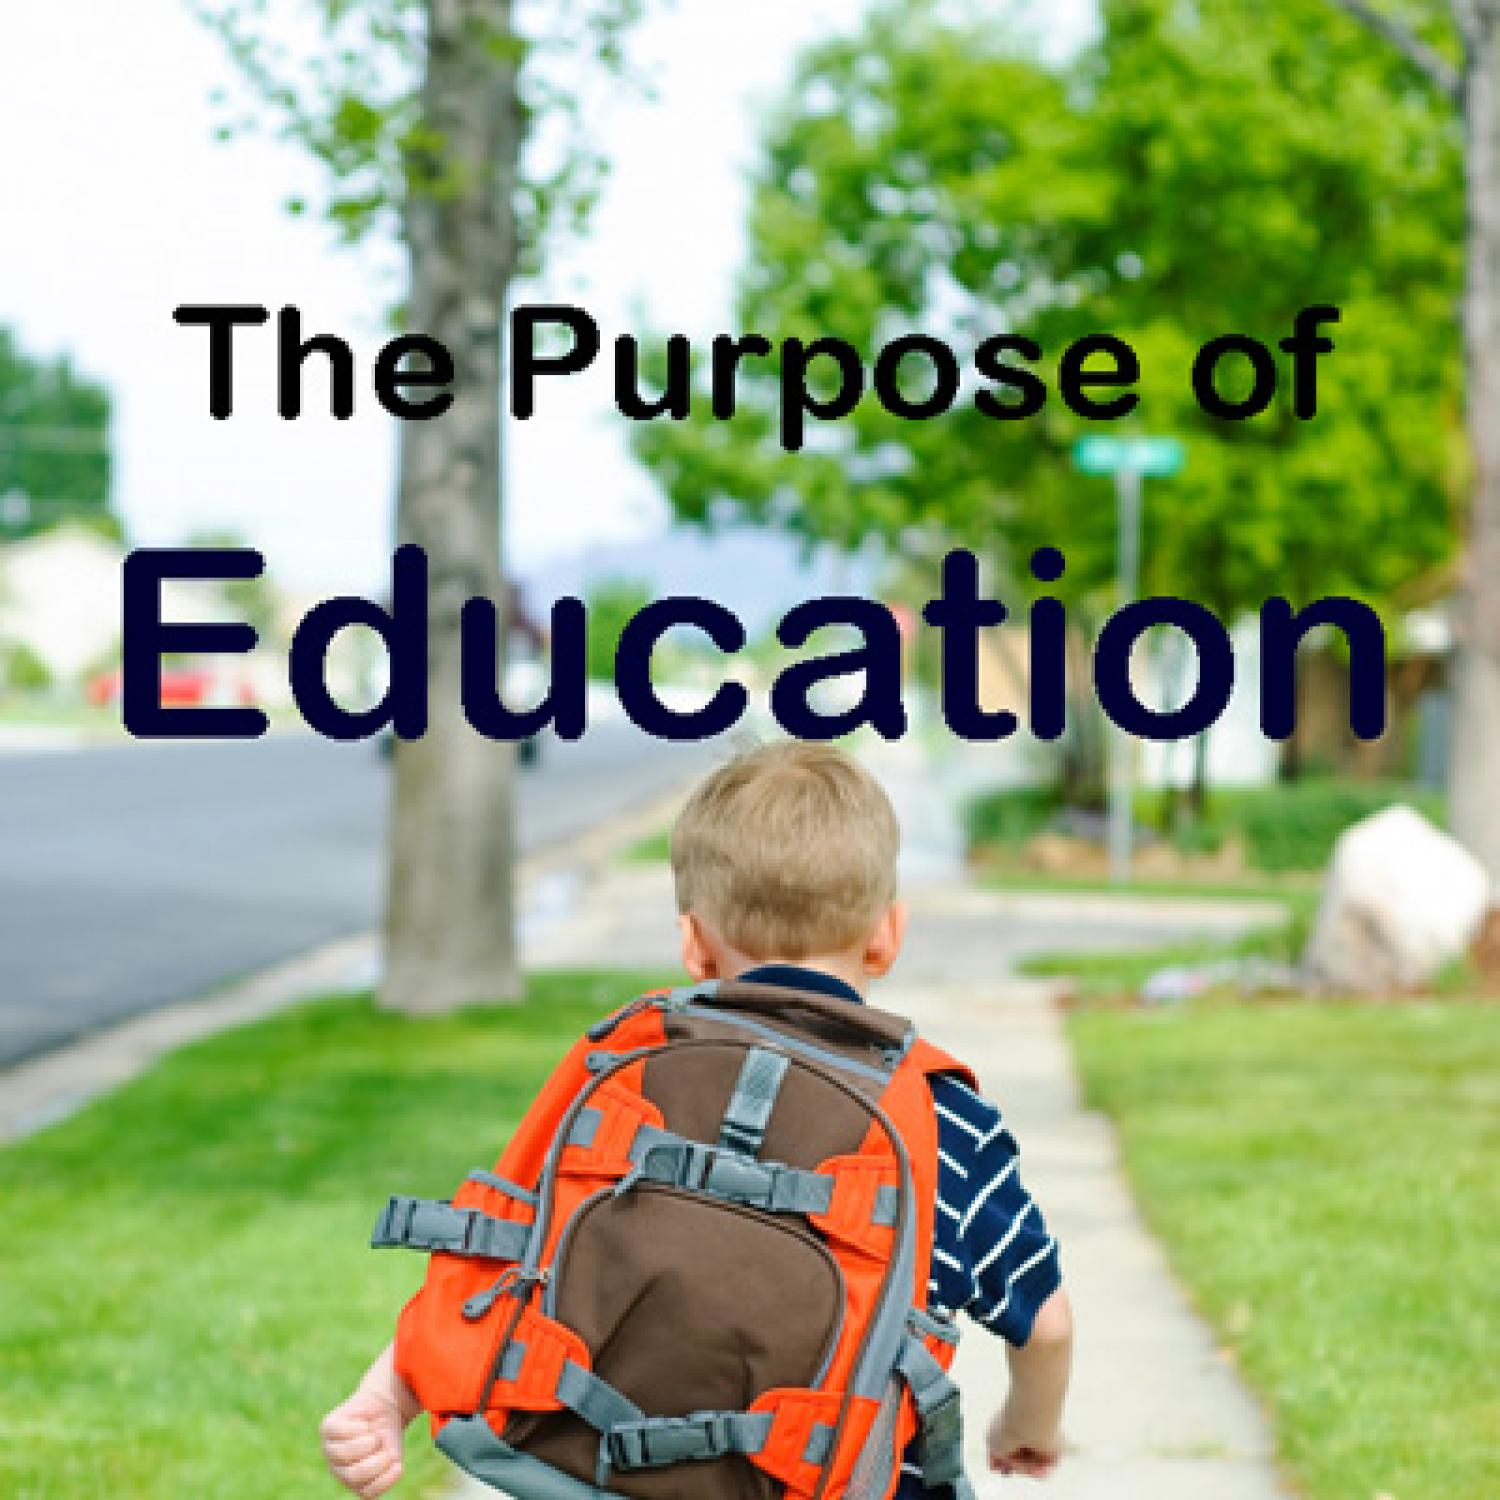 004 Purpose Of Education Essay Example Fearsome Pdf University Full